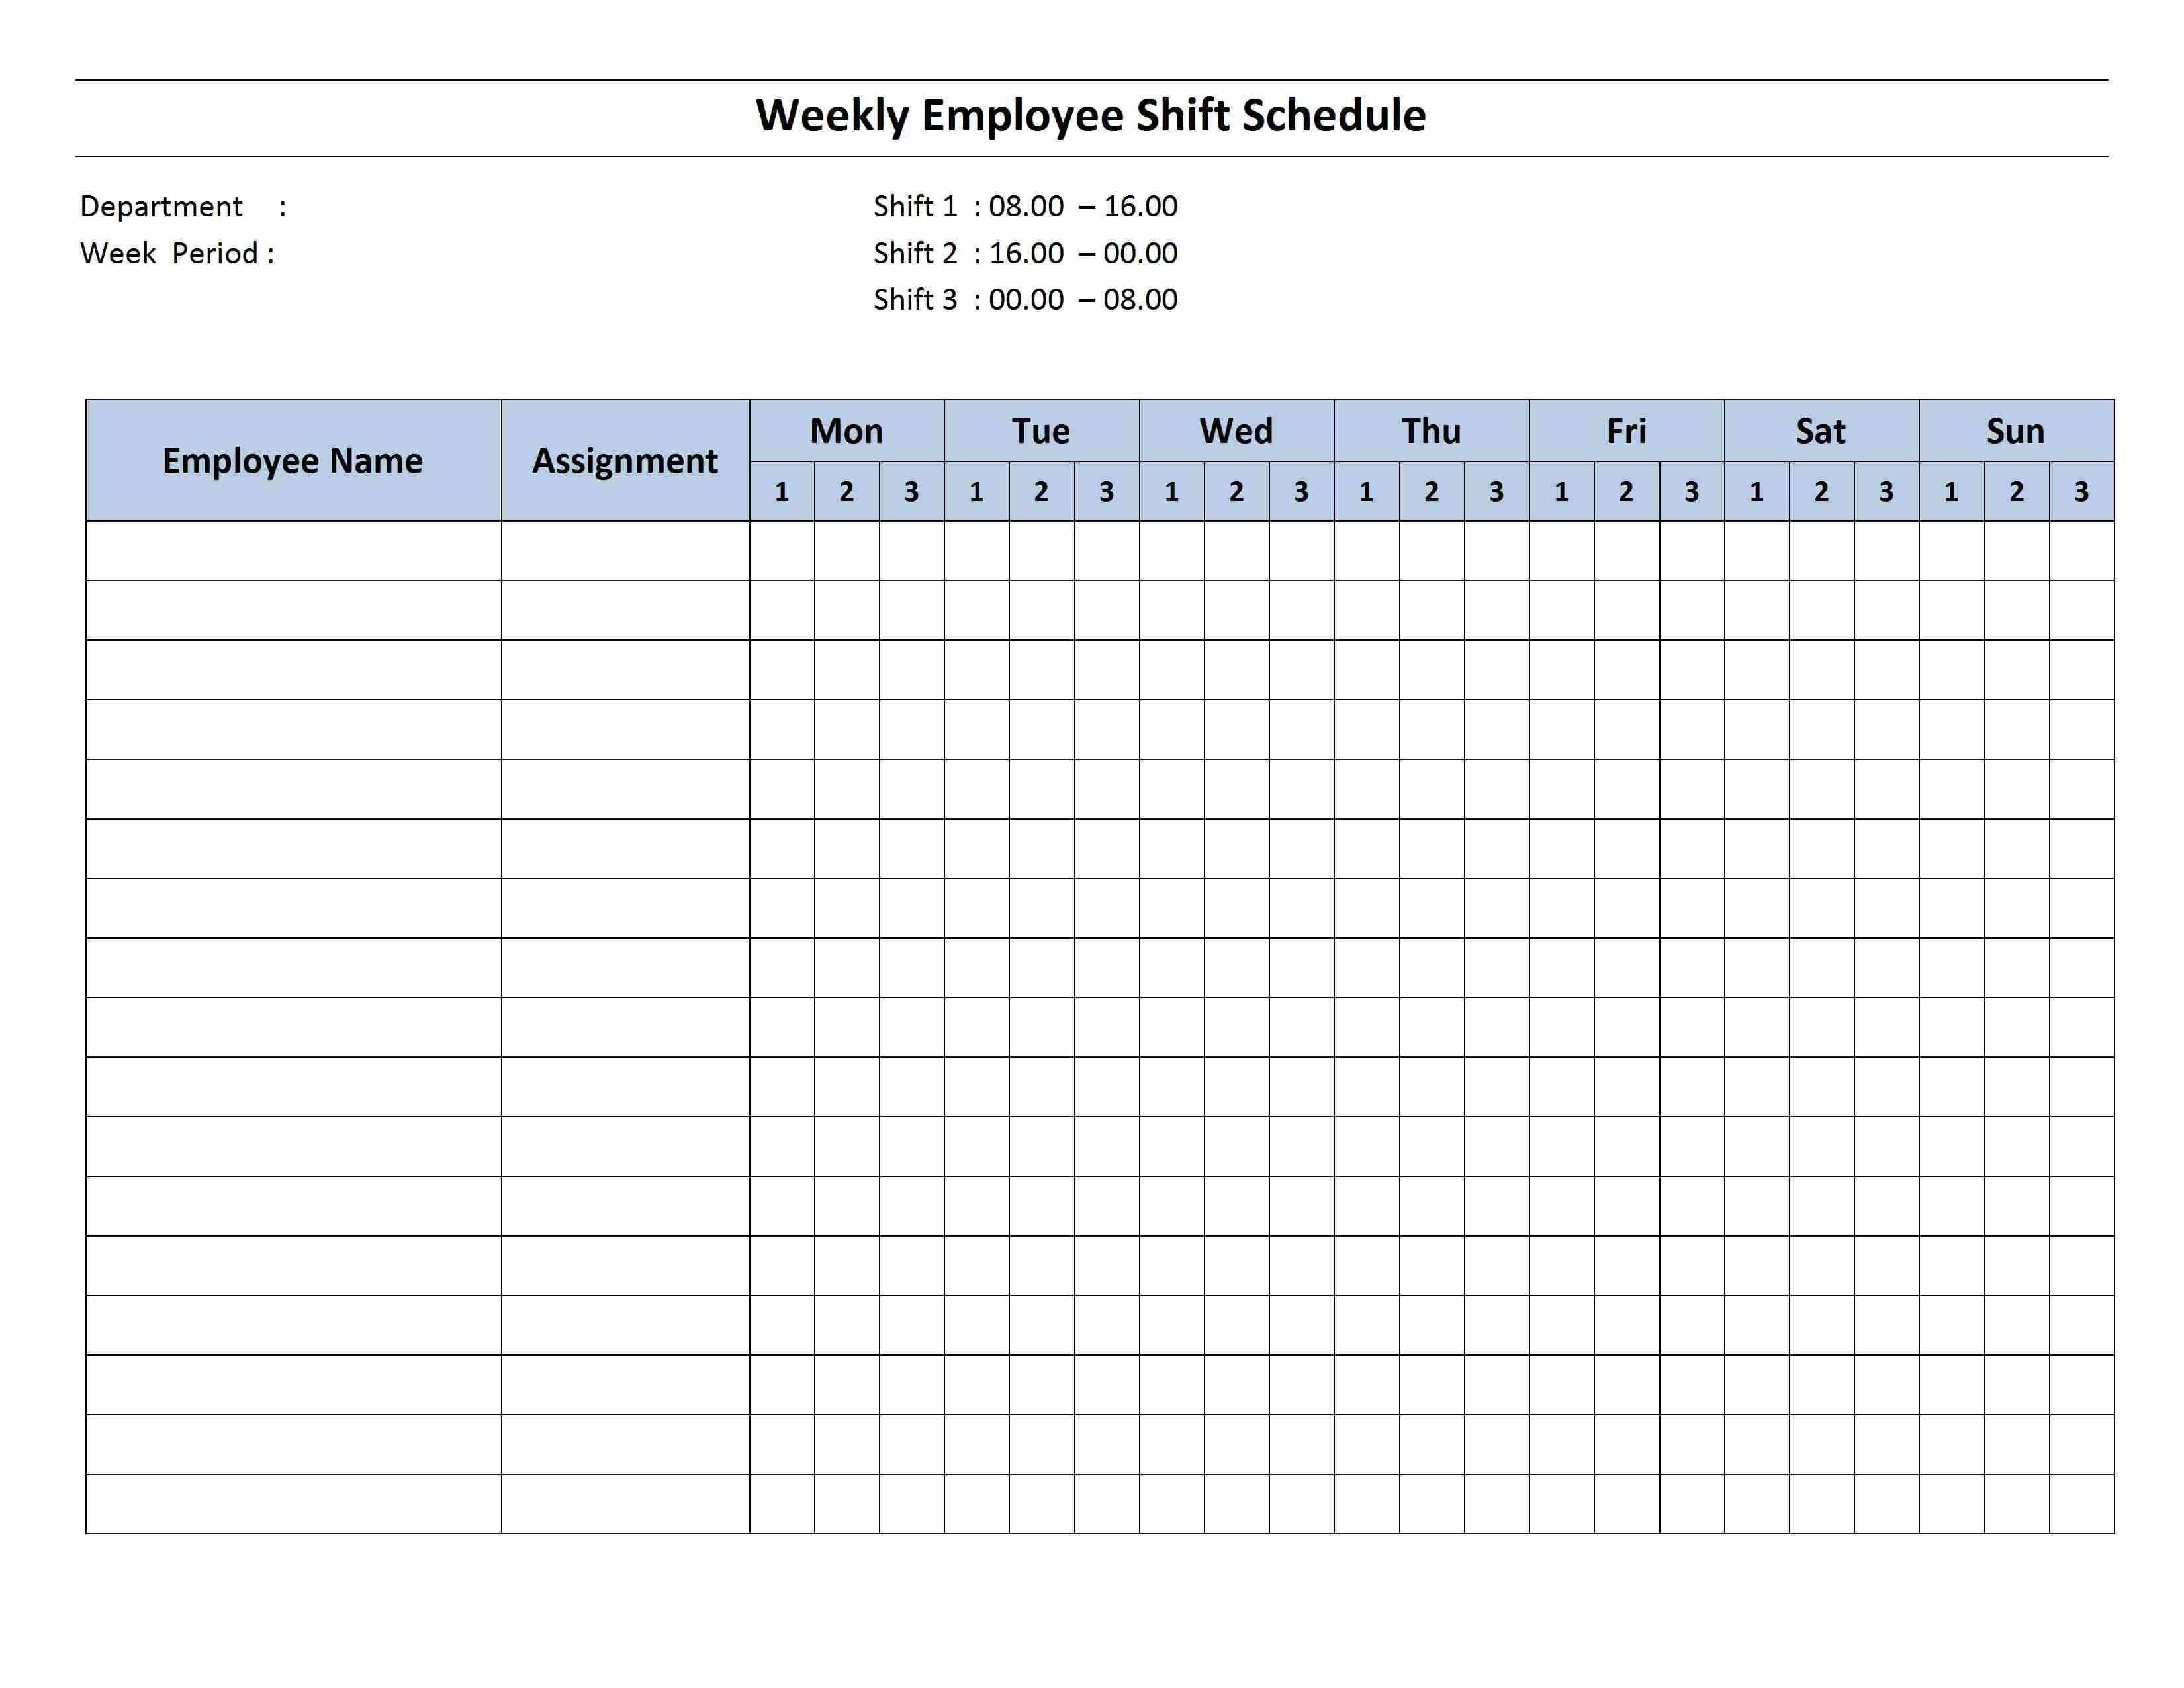 Weekly 8 Hour Shift Schedule (With Images)   Cleaning Eight Week Calendar Template